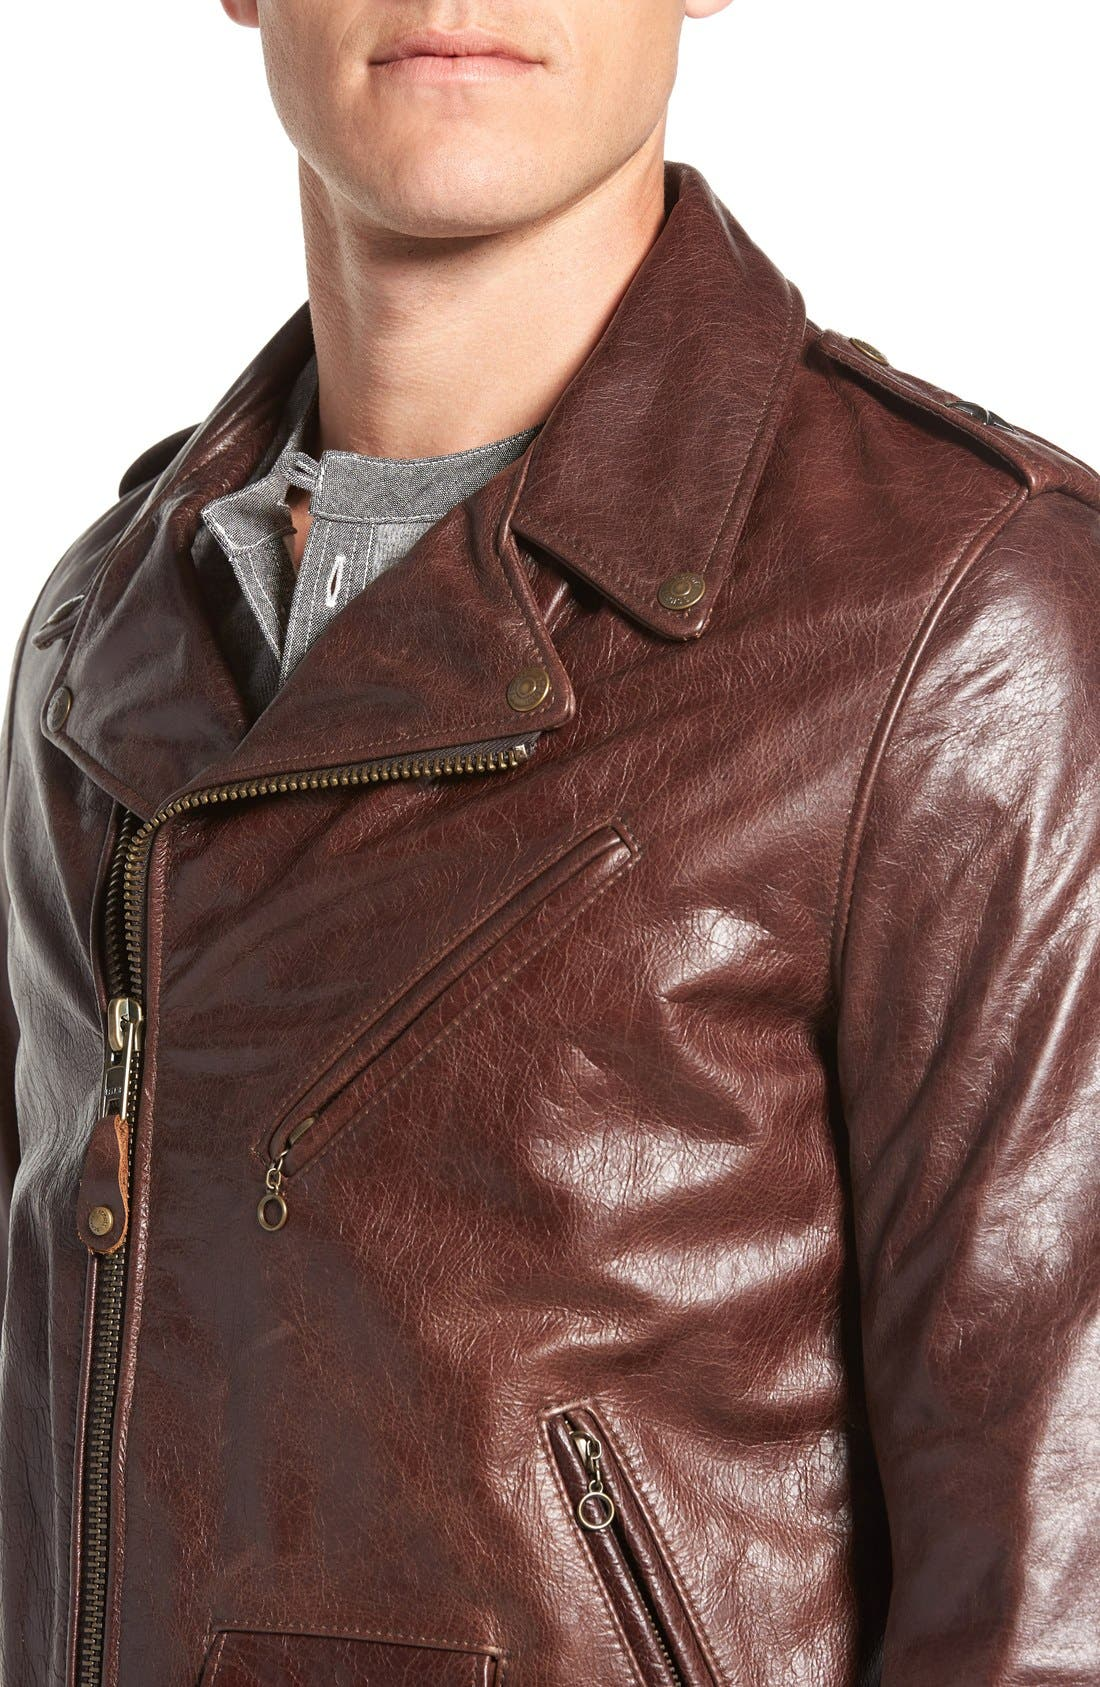 Waxy Cowhide Leather Motorcycle Jacket,                             Alternate thumbnail 4, color,                             Brown